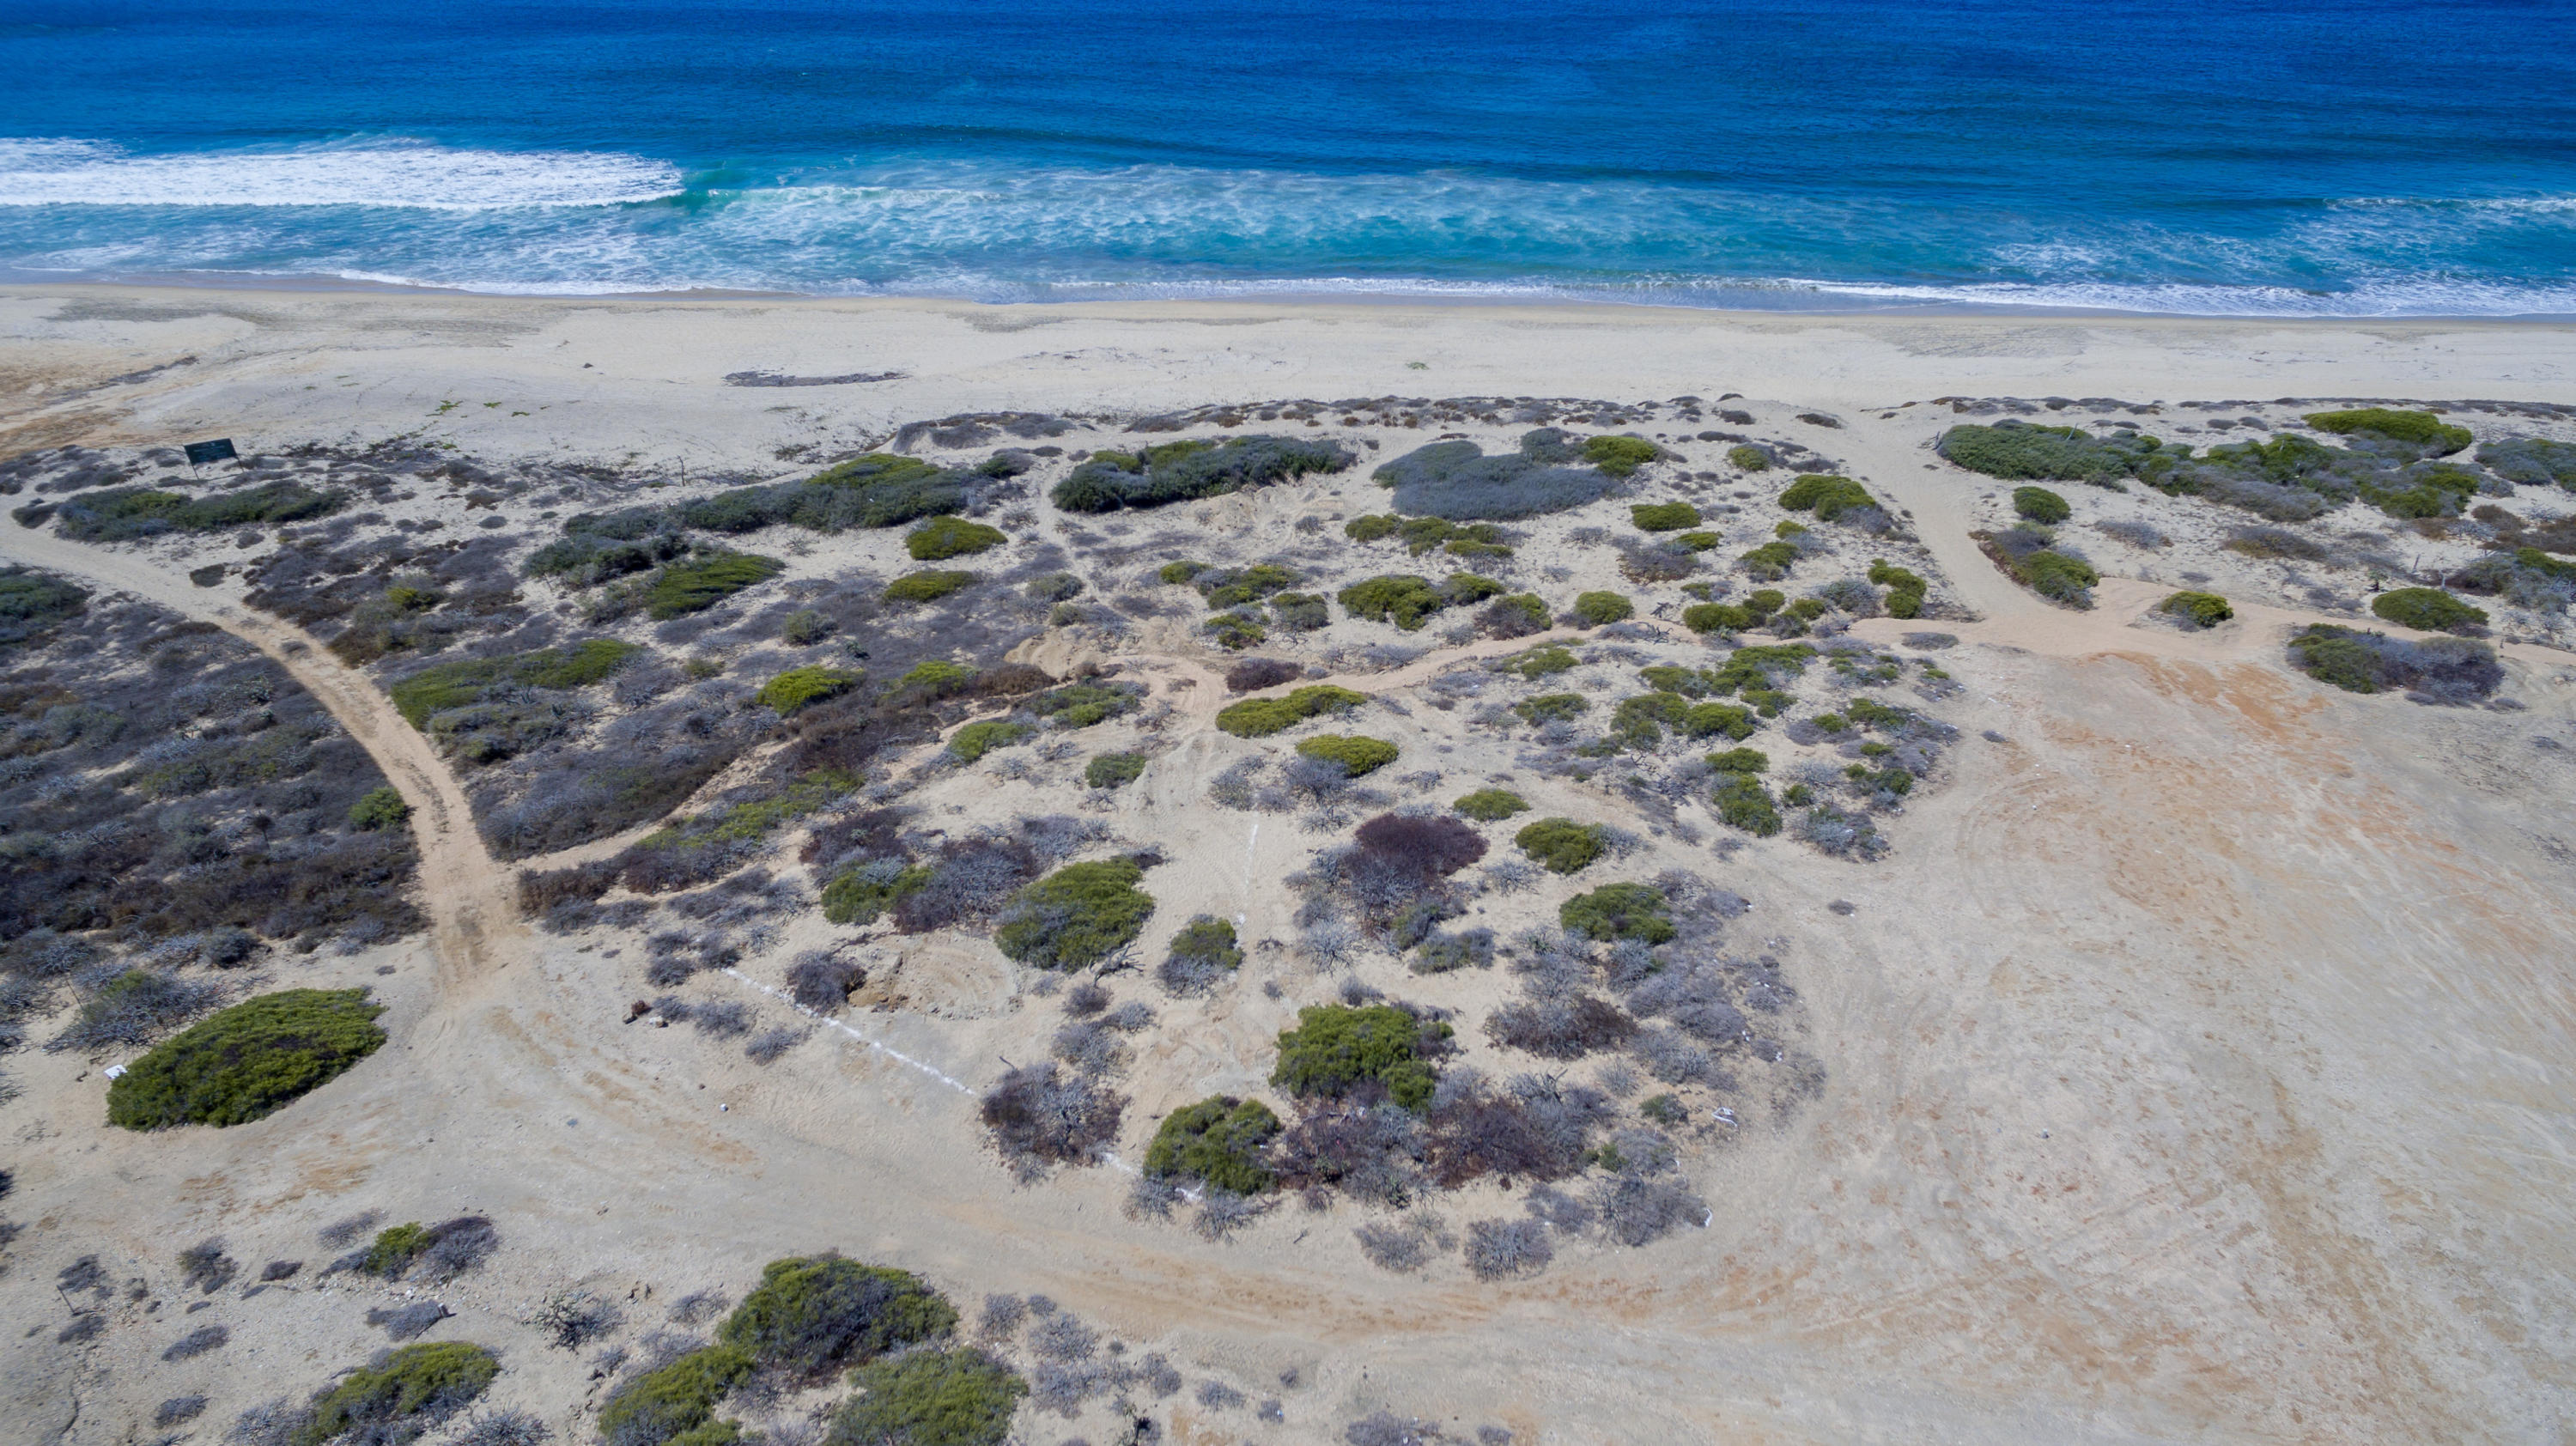 Rare Oceanfront Cerritos land  - primed and ready for beachfront home or dream project. easy walk to Cerritos Inn for breakfast or refreshments/snacks  - and just a stone throw from all year surf break and an endless summer beach that is home to an impressive list of marine flora and fauna.